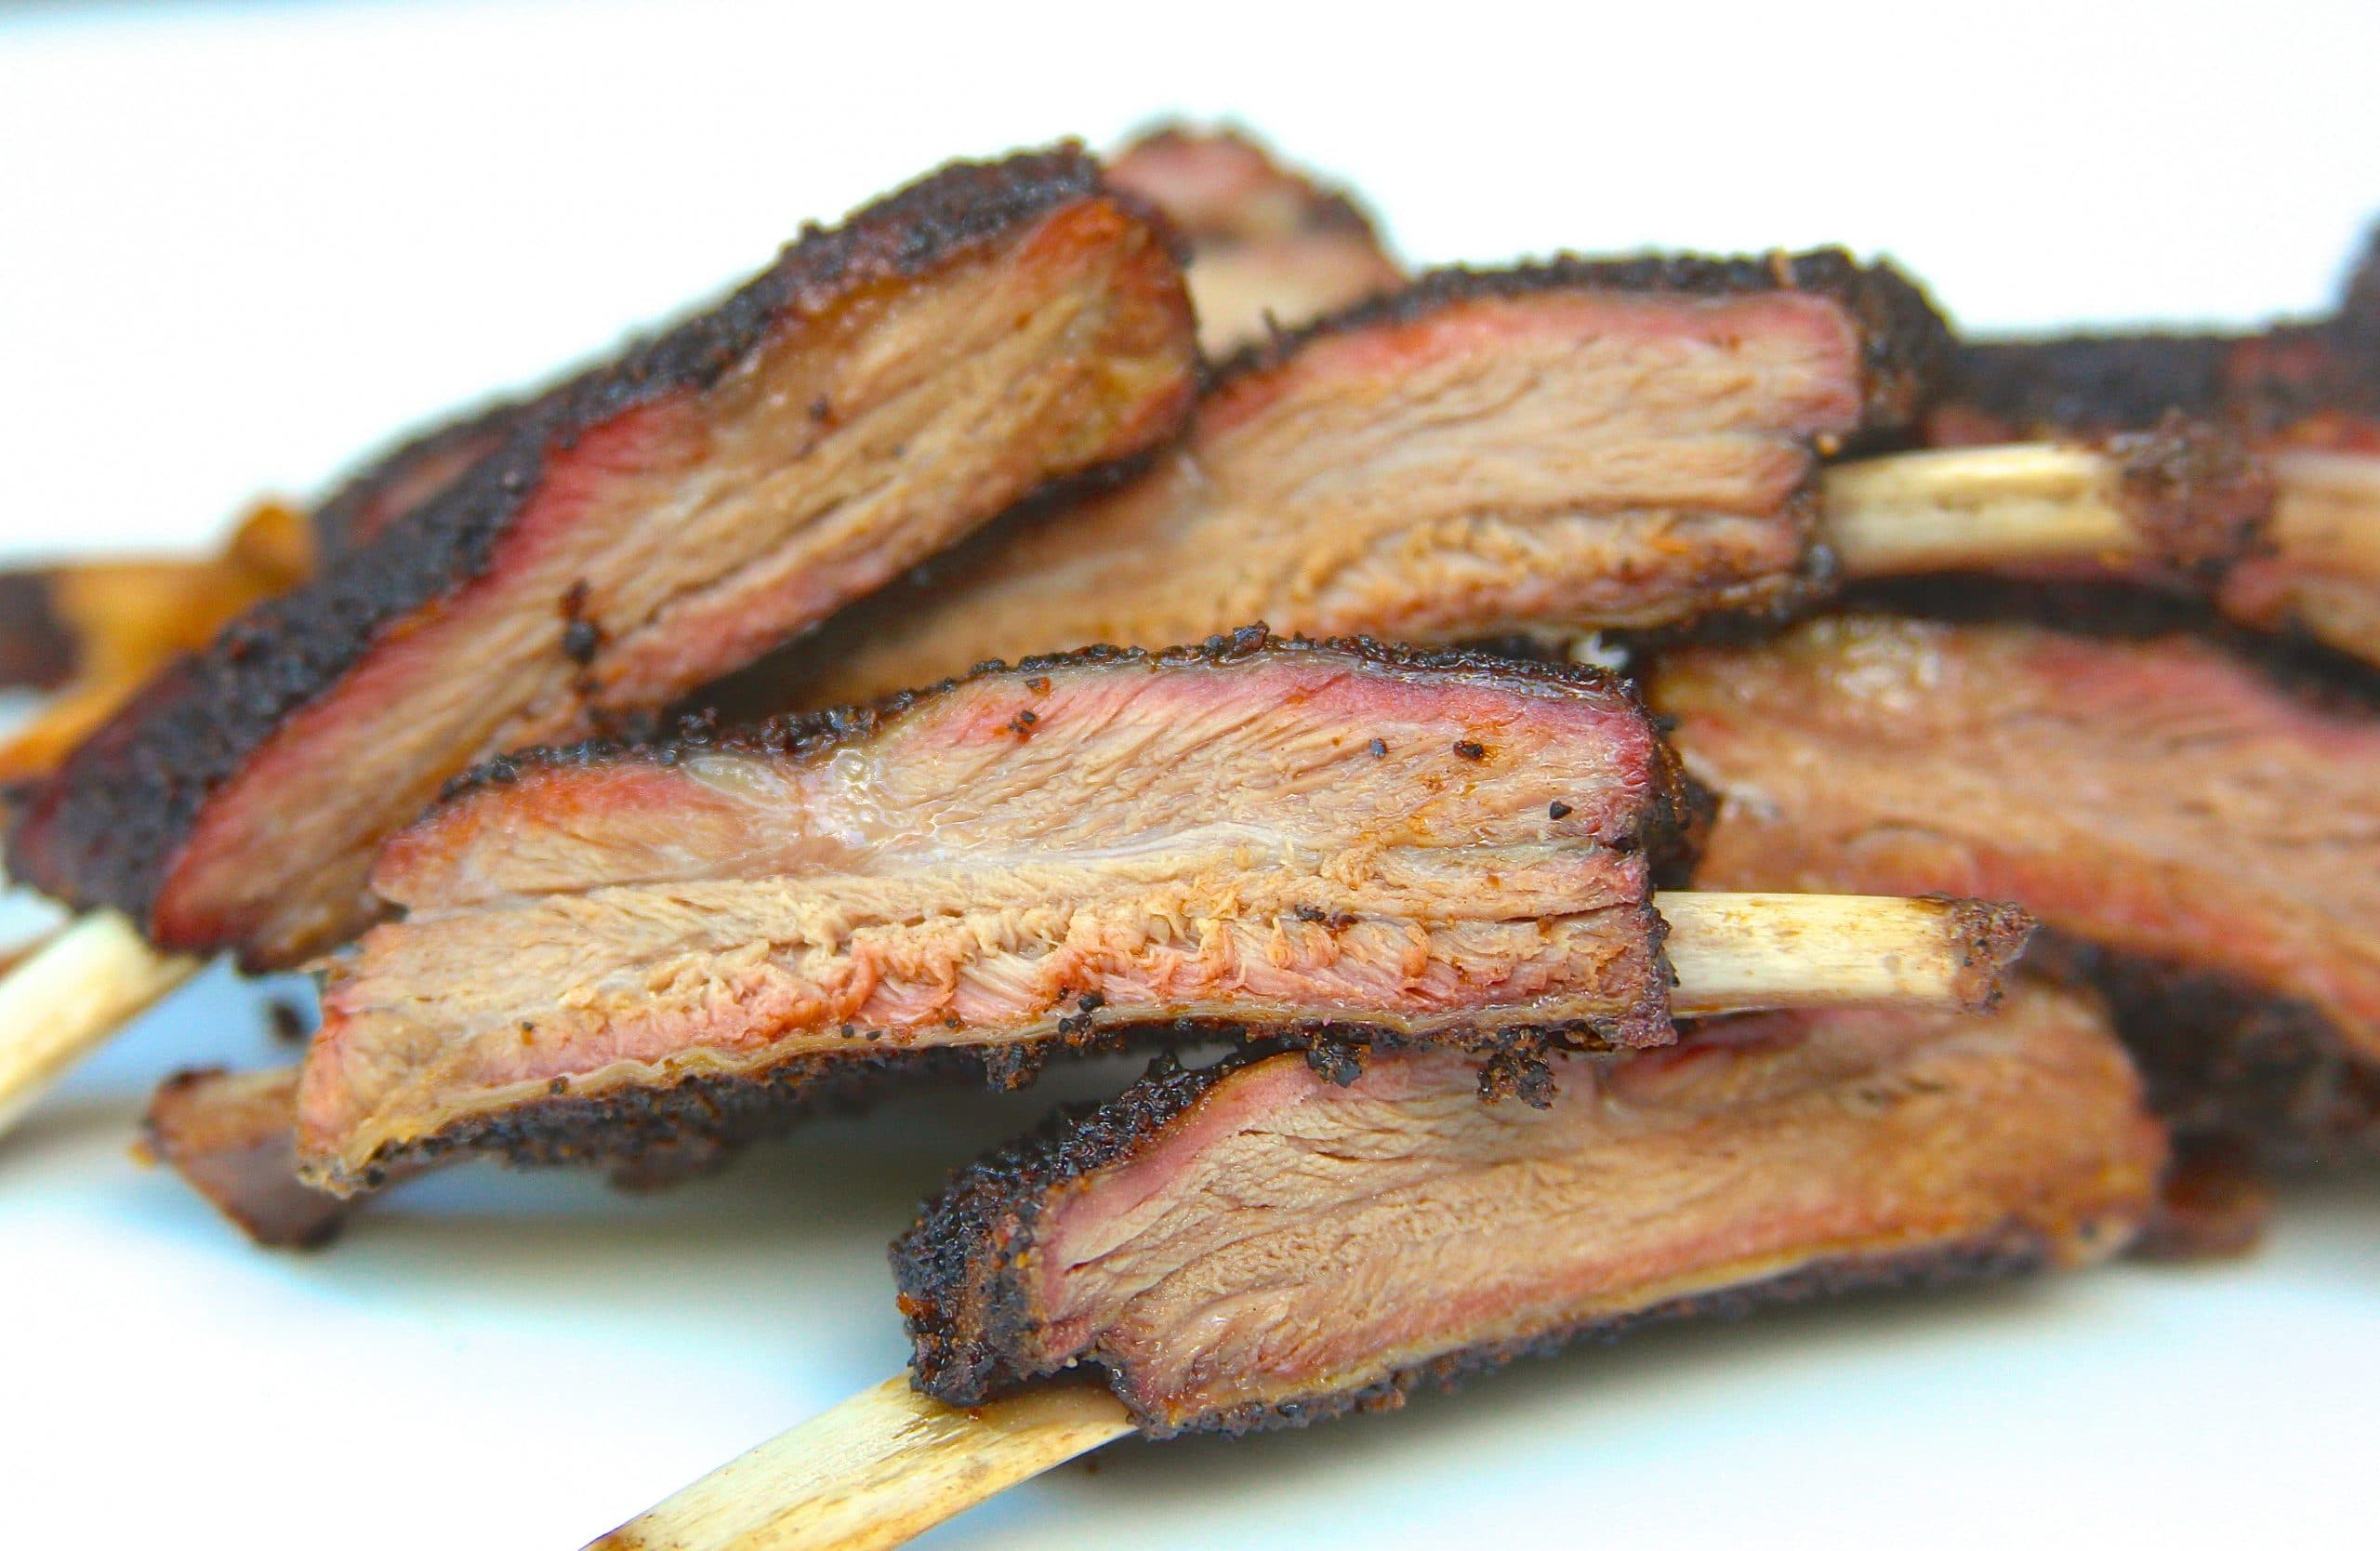 Sliced smoked venison ribs